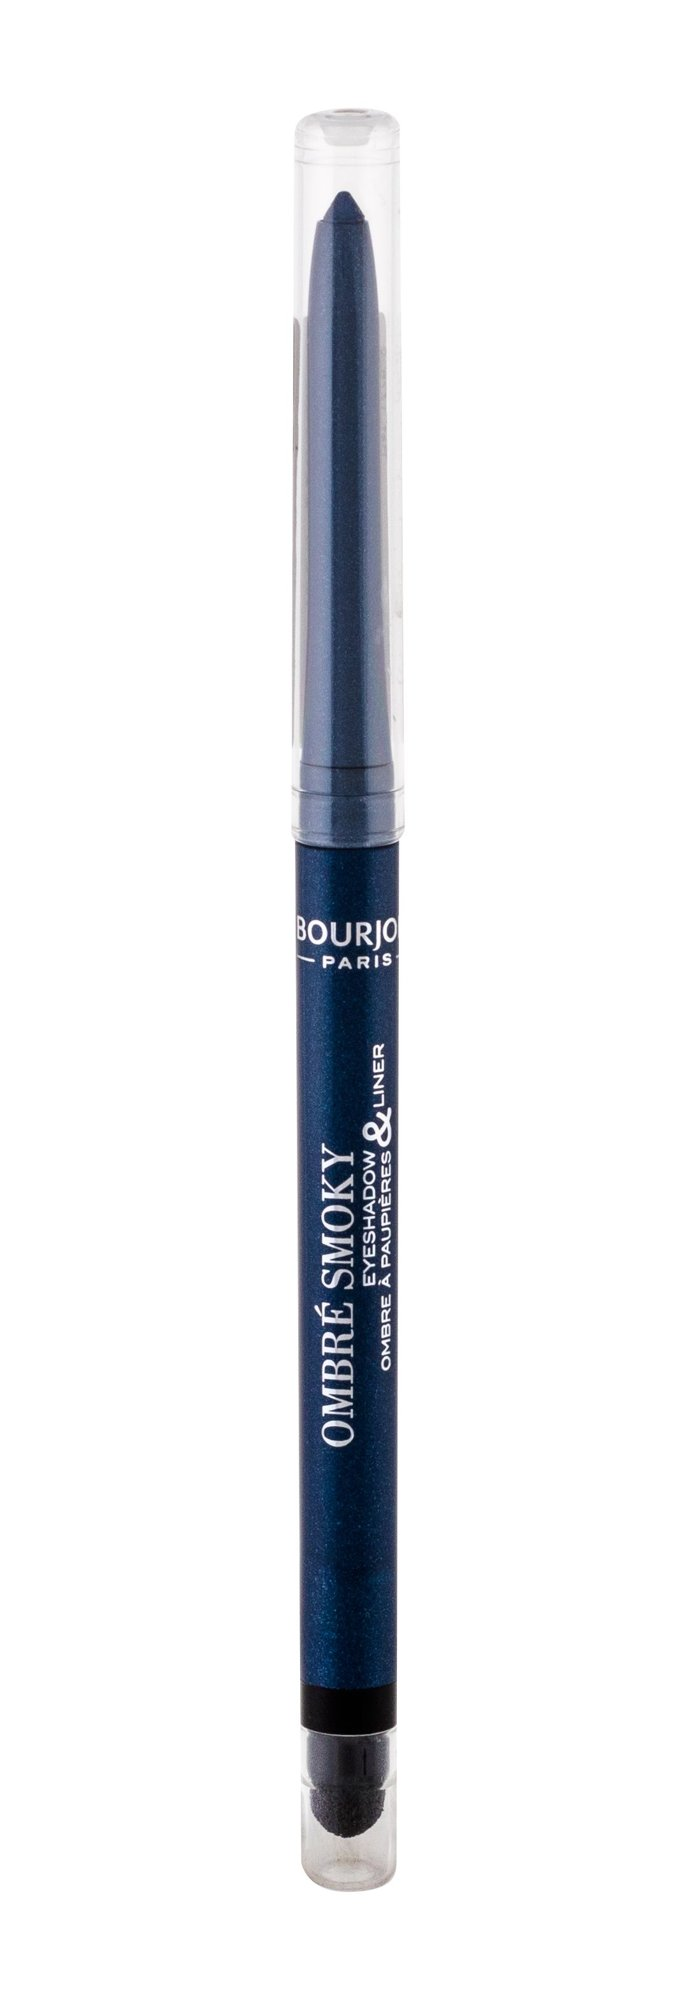 BOURJOIS Paris Ombré Smoky Eye Line 0,28ml 004 Blue